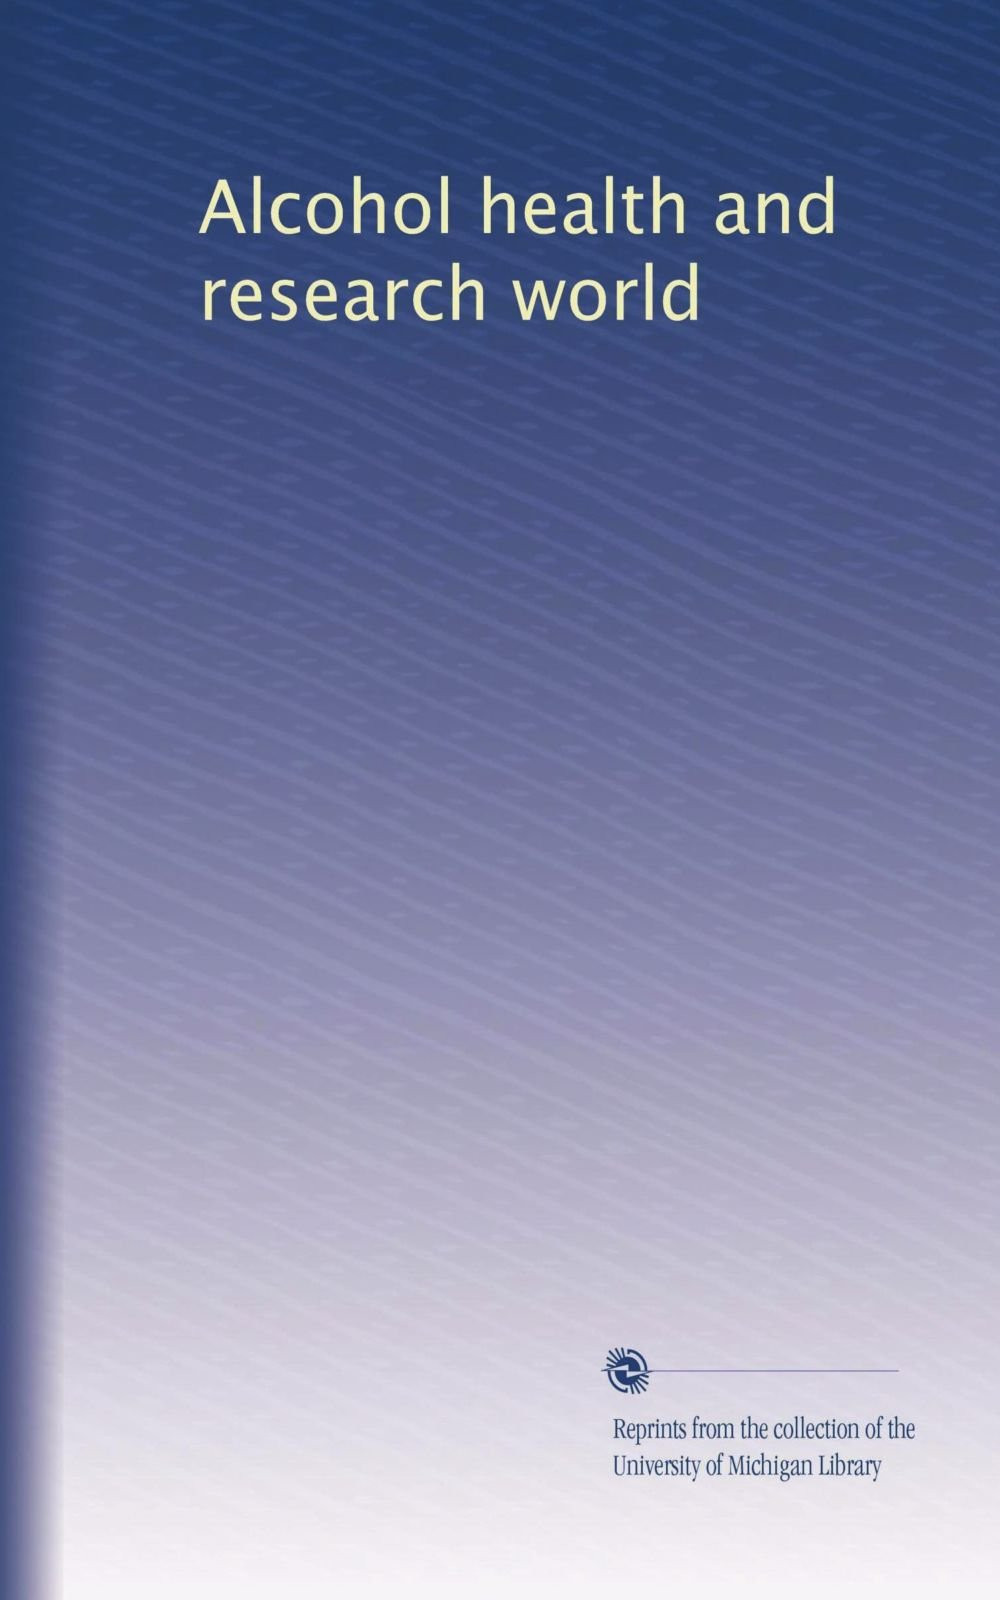 Download Alcohol health and research world (Volume 6) pdf